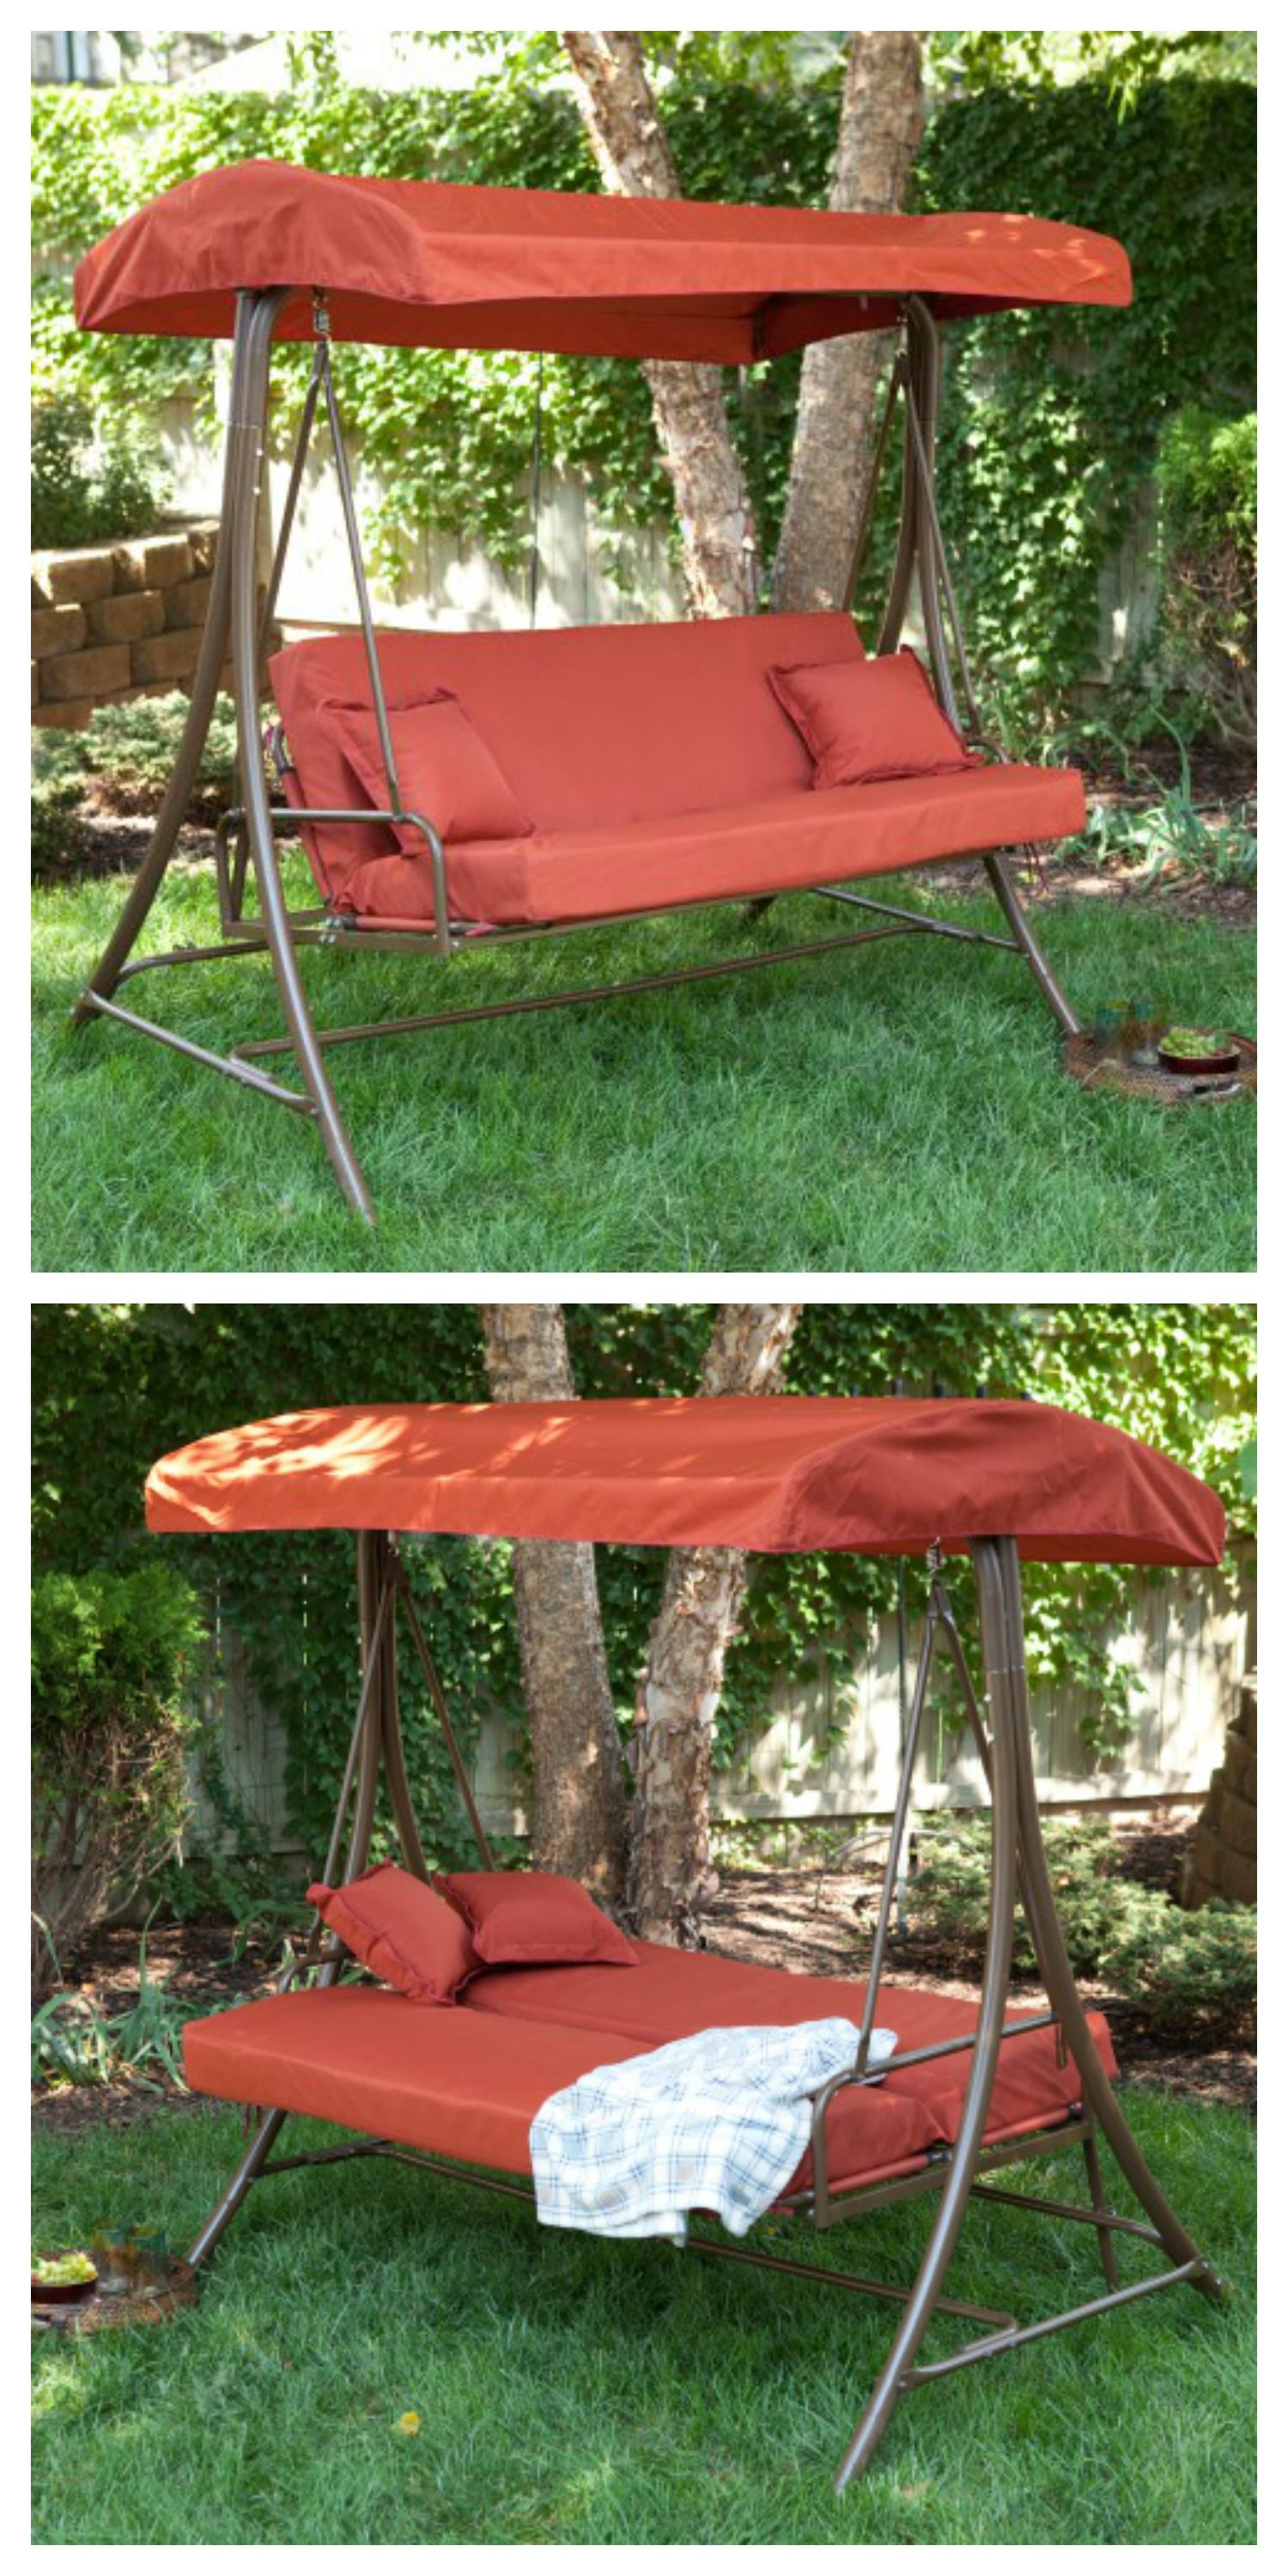 Coral Coast Siesta 3 Person Canopy Swing Bed Terra Cotta